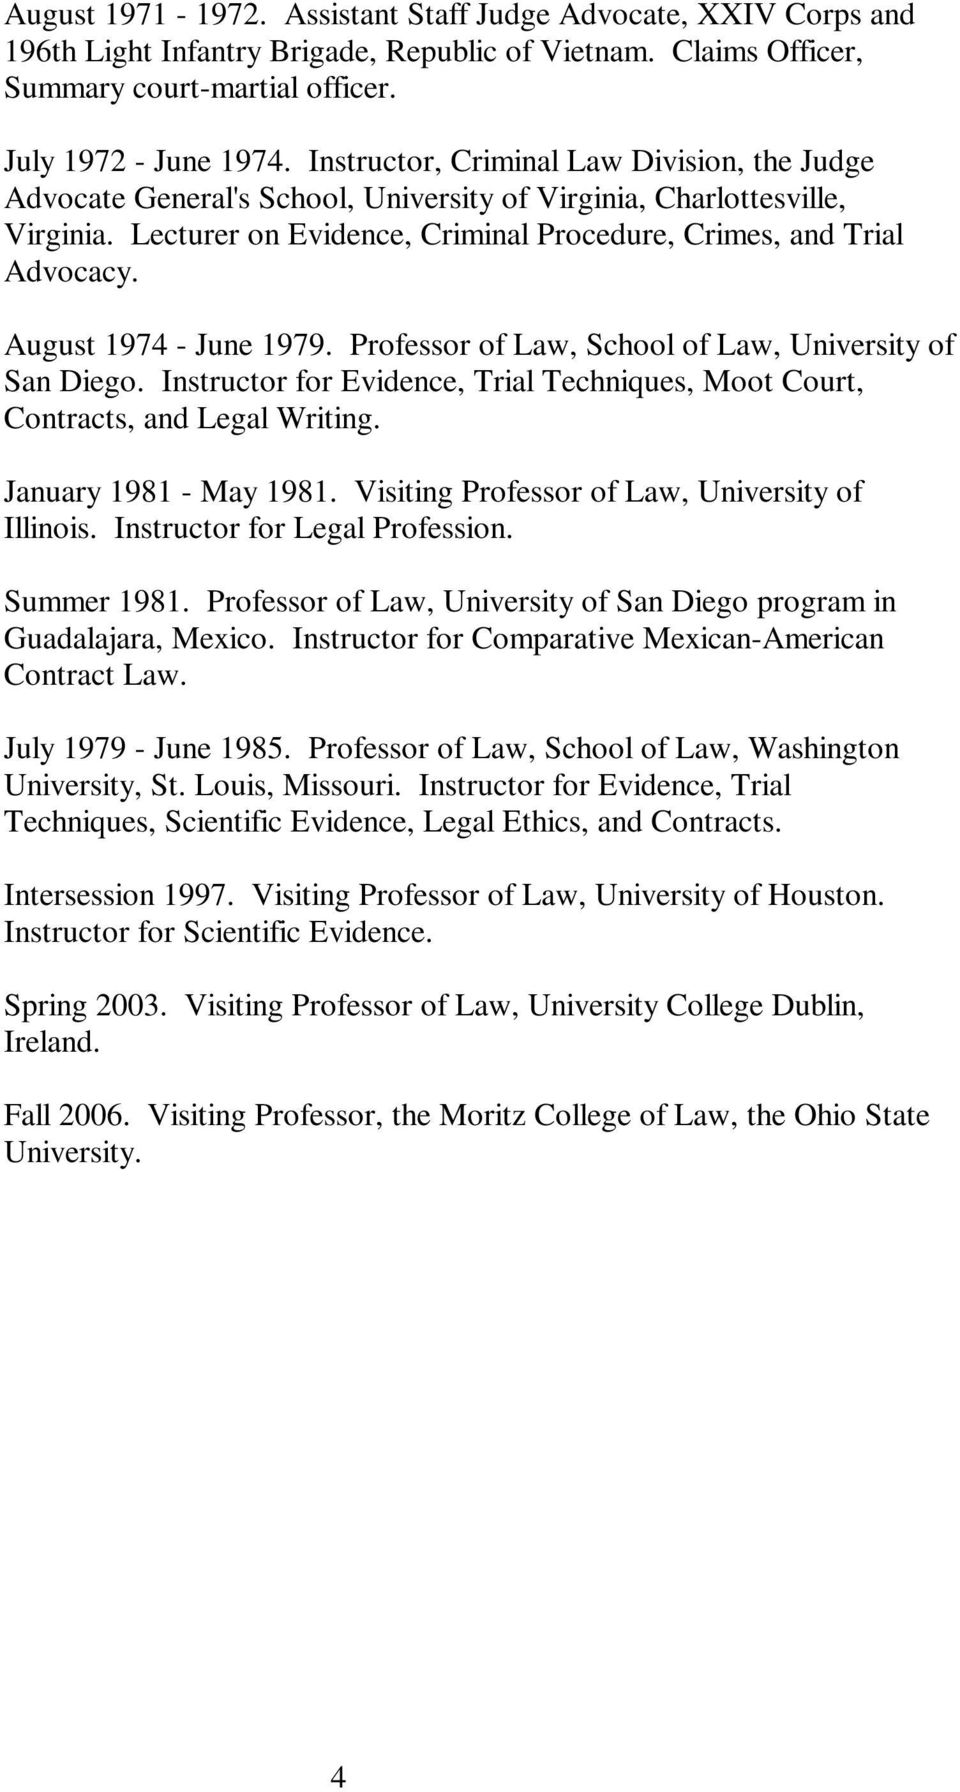 August 1974 - June 1979. Professor of Law, School of Law, University of San Diego. Instructor for Evidence, Trial Techniques, Moot Court, Contracts, and Legal Writing. January 1981 - May 1981.